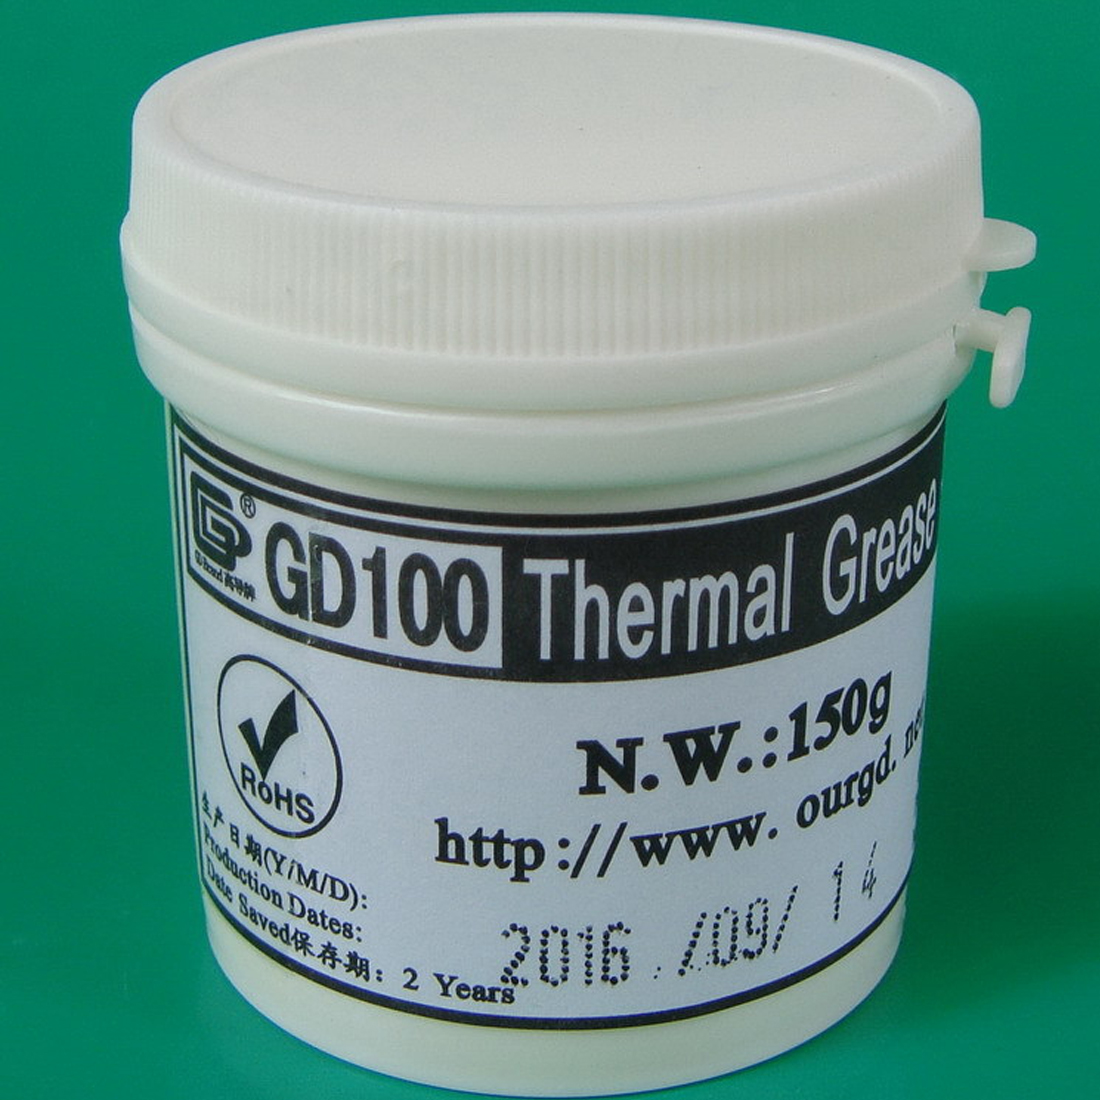 NOYOKERE Heat Sink Plaster Compound GD100 Thermal Conductive Grease Paste Silicone Net Weight 150 Grams White For CPU CN150